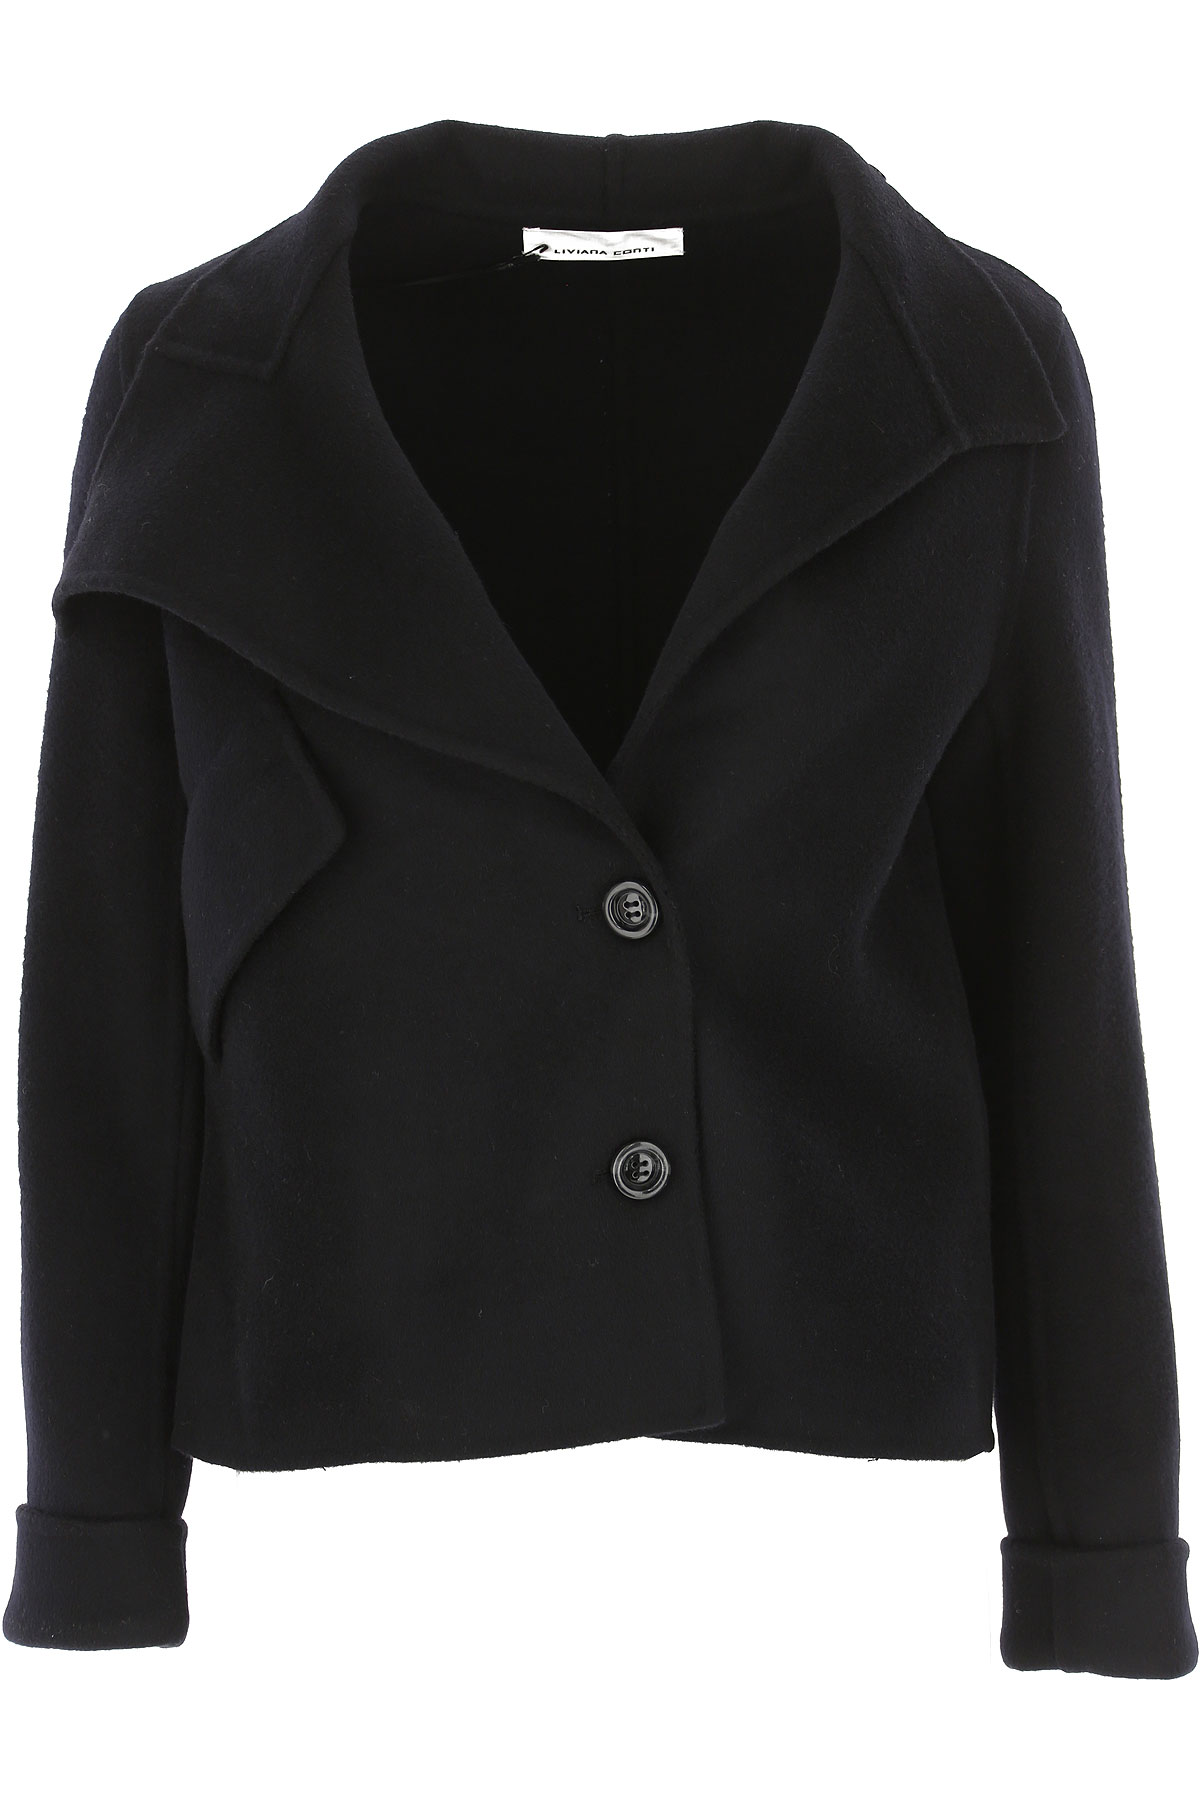 Image of Liviana Conti Jacket for Women, Black, Wool, 2017, 2 4 6